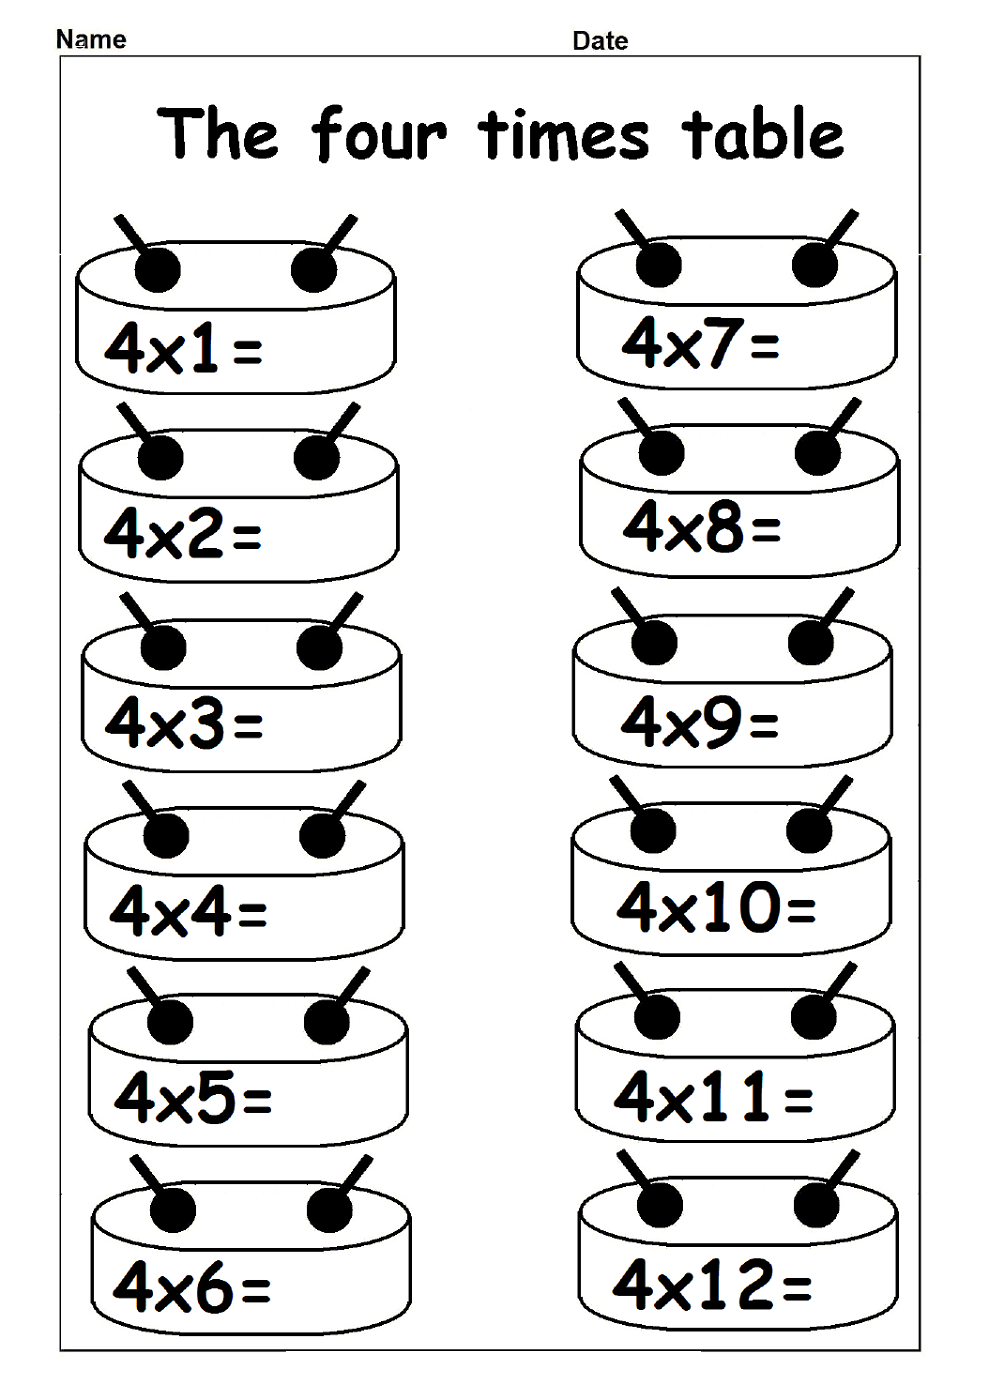 4 times table worksheets multiplication